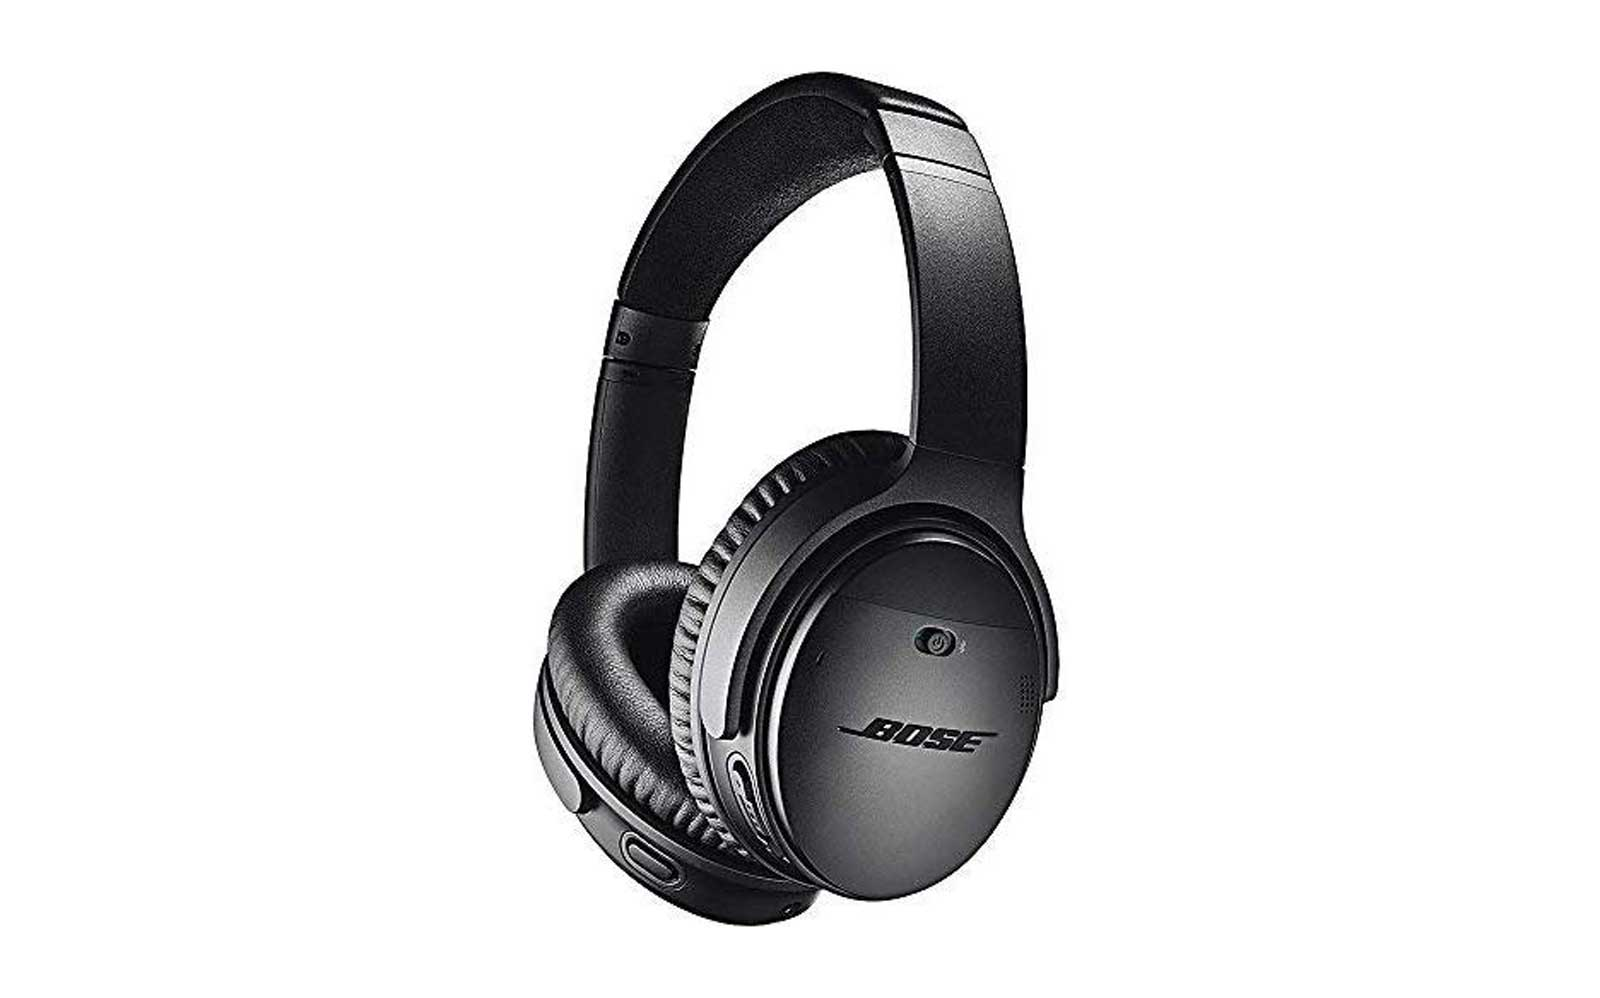 Black Bose Over the Ear Headphones